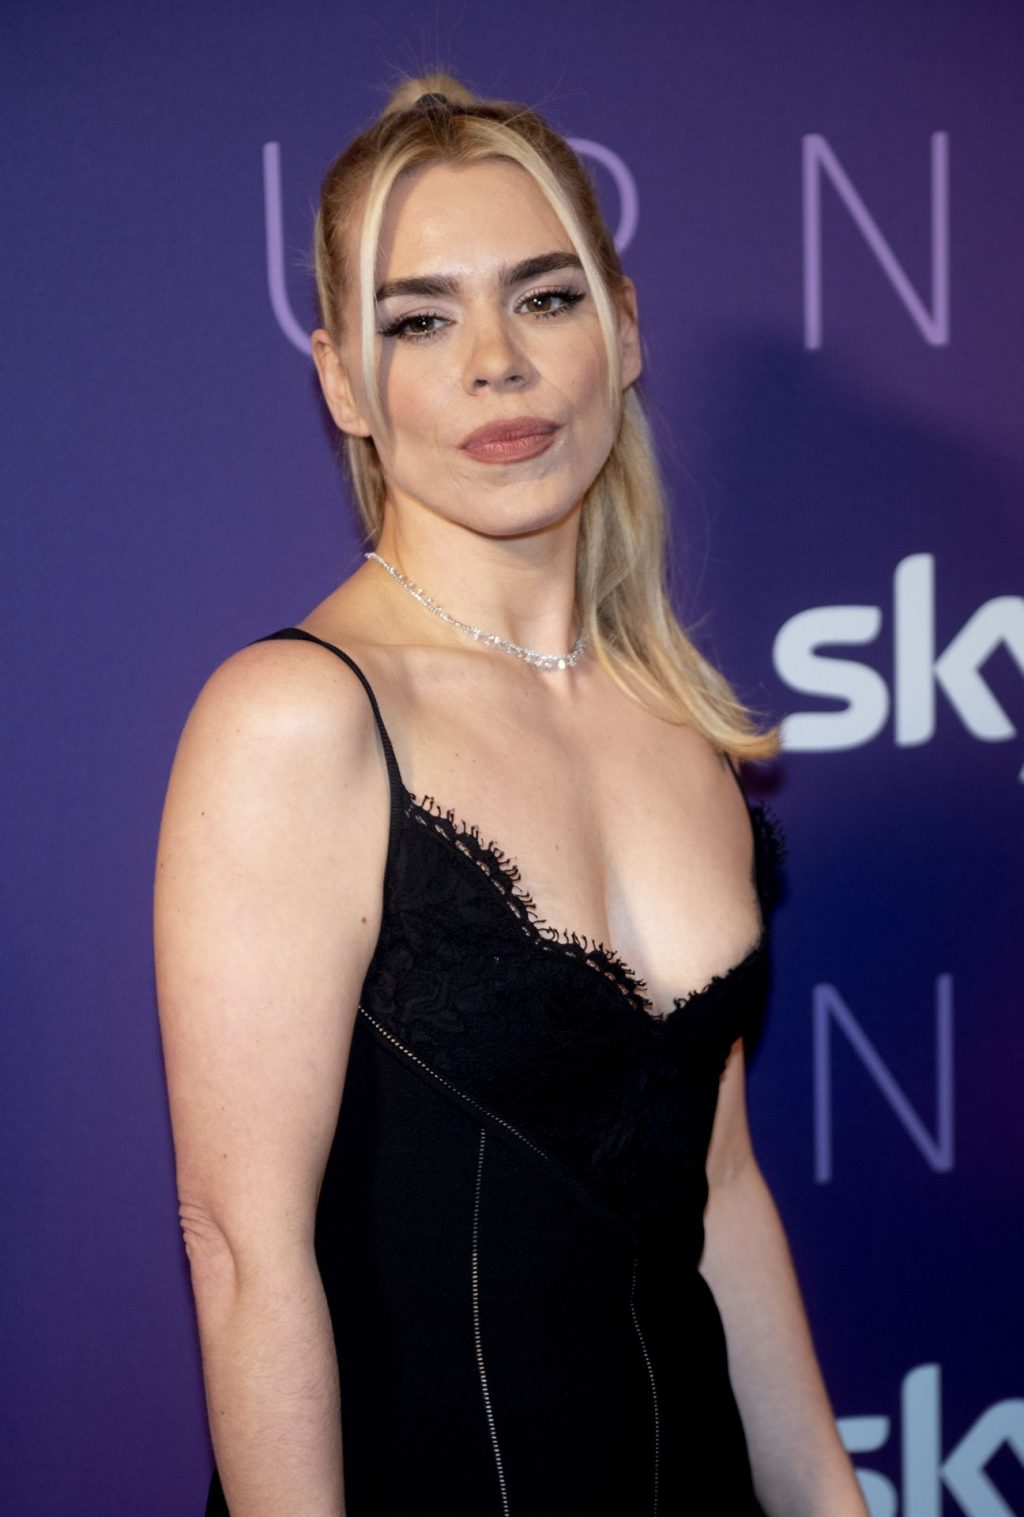 Billie Piper Sexy The Fappening Blog 34 1024x1517 - Billie Piper Smiles at the Sky Up Next Event (67 Photos)